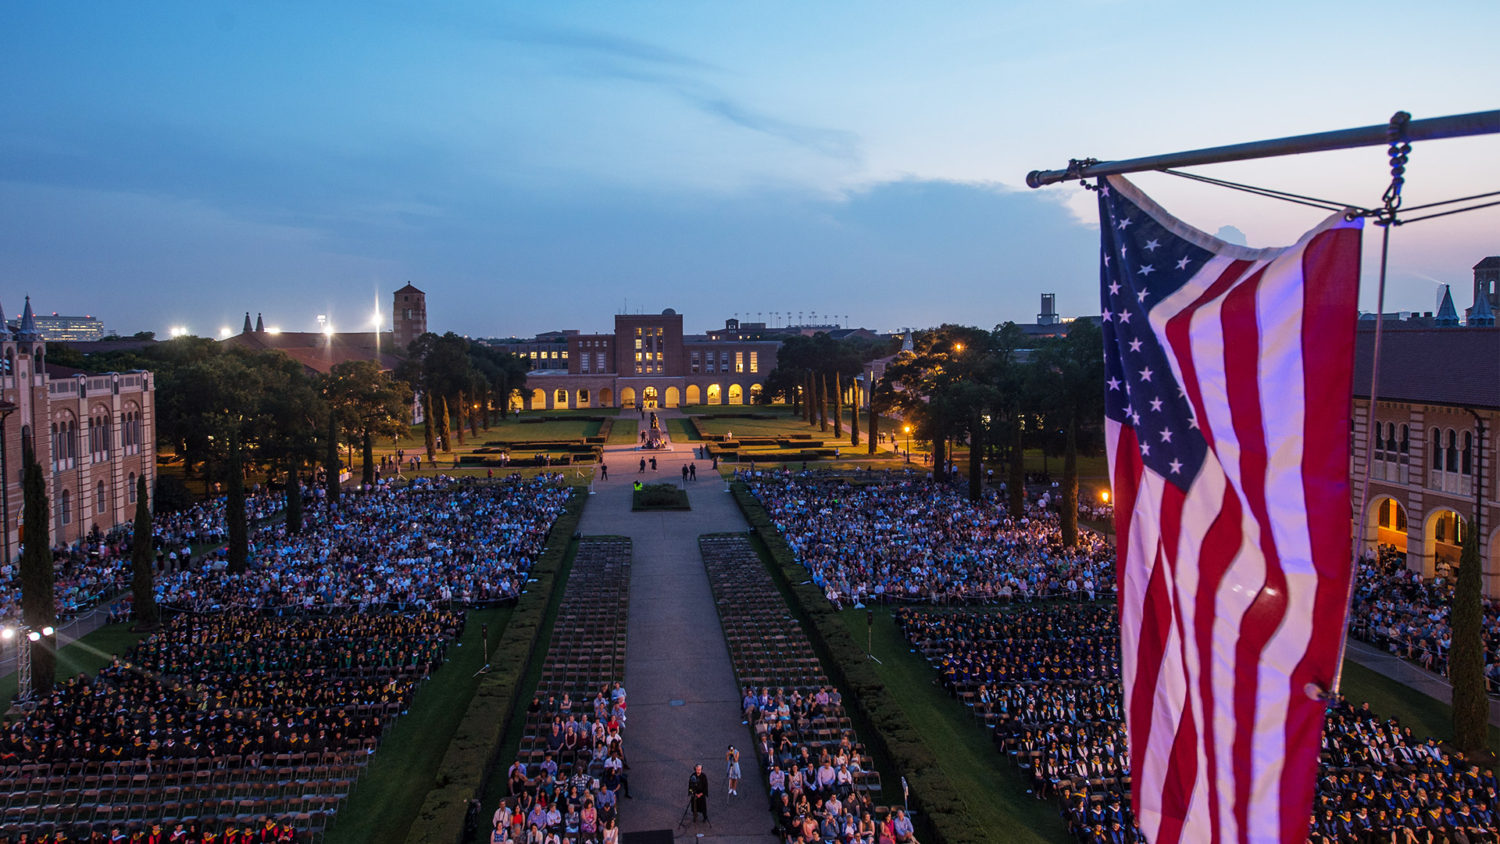 Rice campus at night during commencement